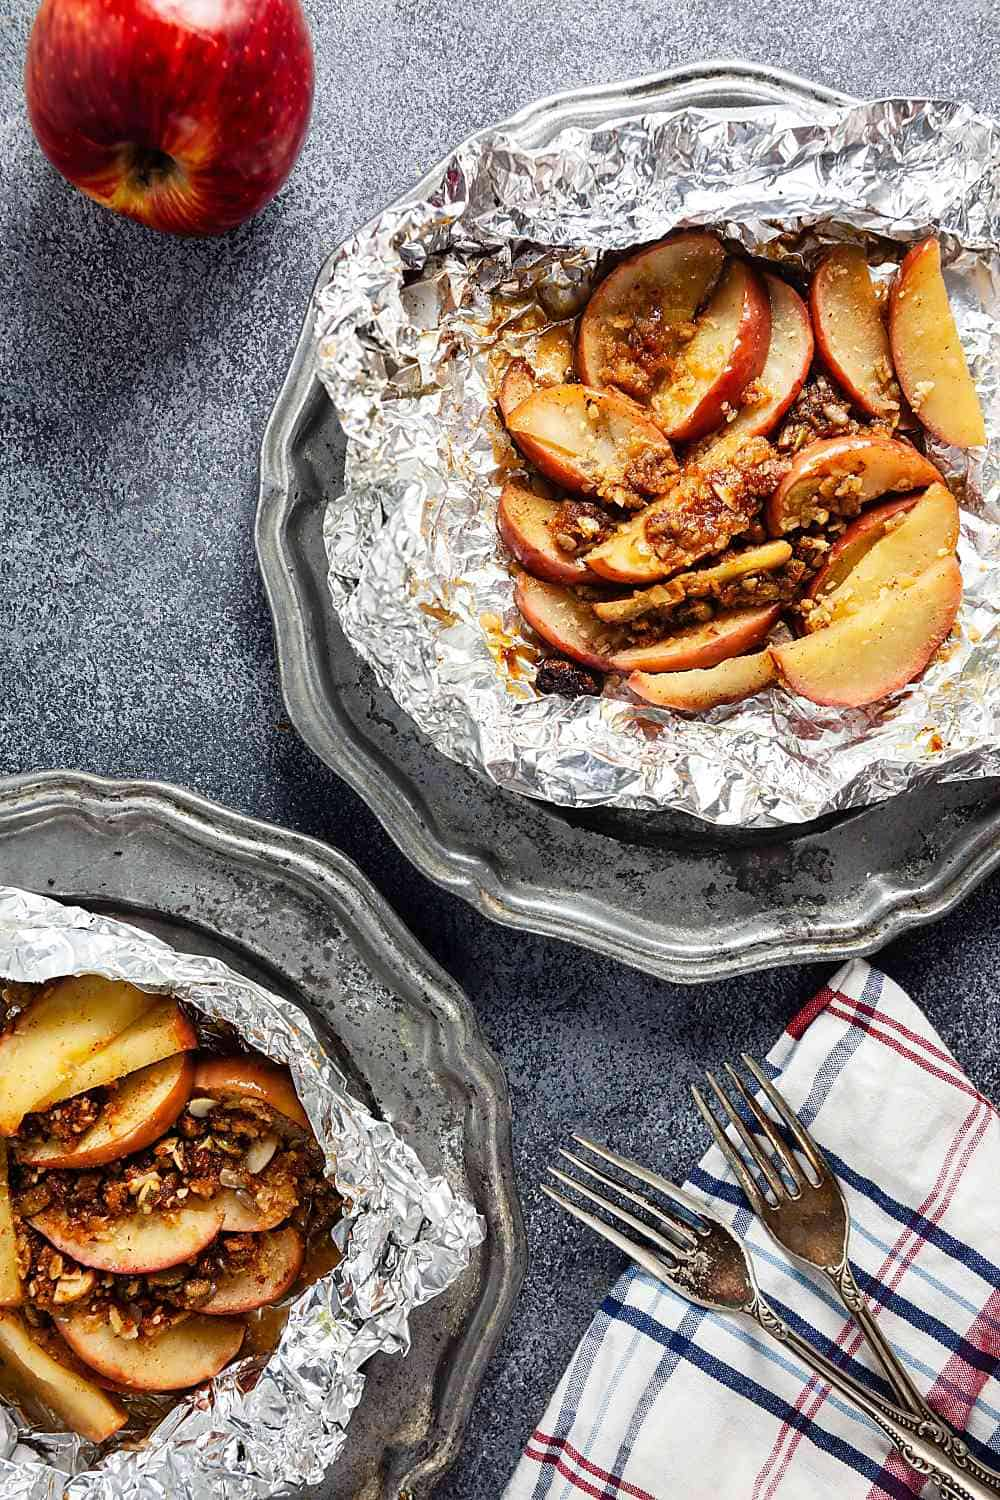 Paleo Apple Crisp Foil Packs | Grain Free, Gluten Free